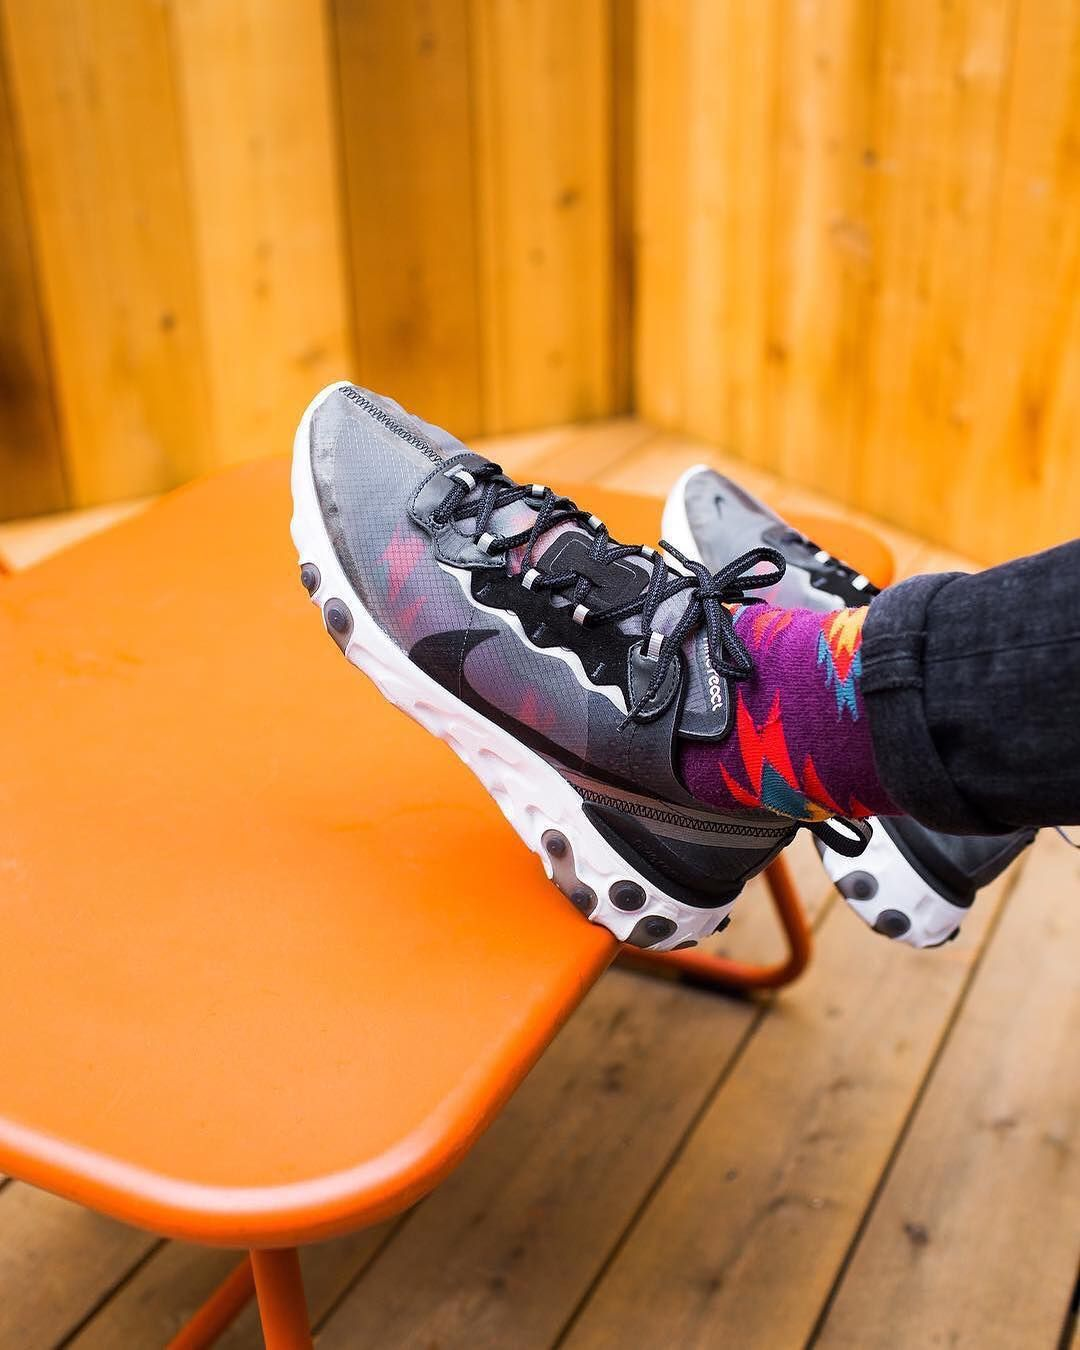 8a39a1002660 La Nike React Element 87 Anthracite Black est disponible sur wethenew.com   ralphromeo